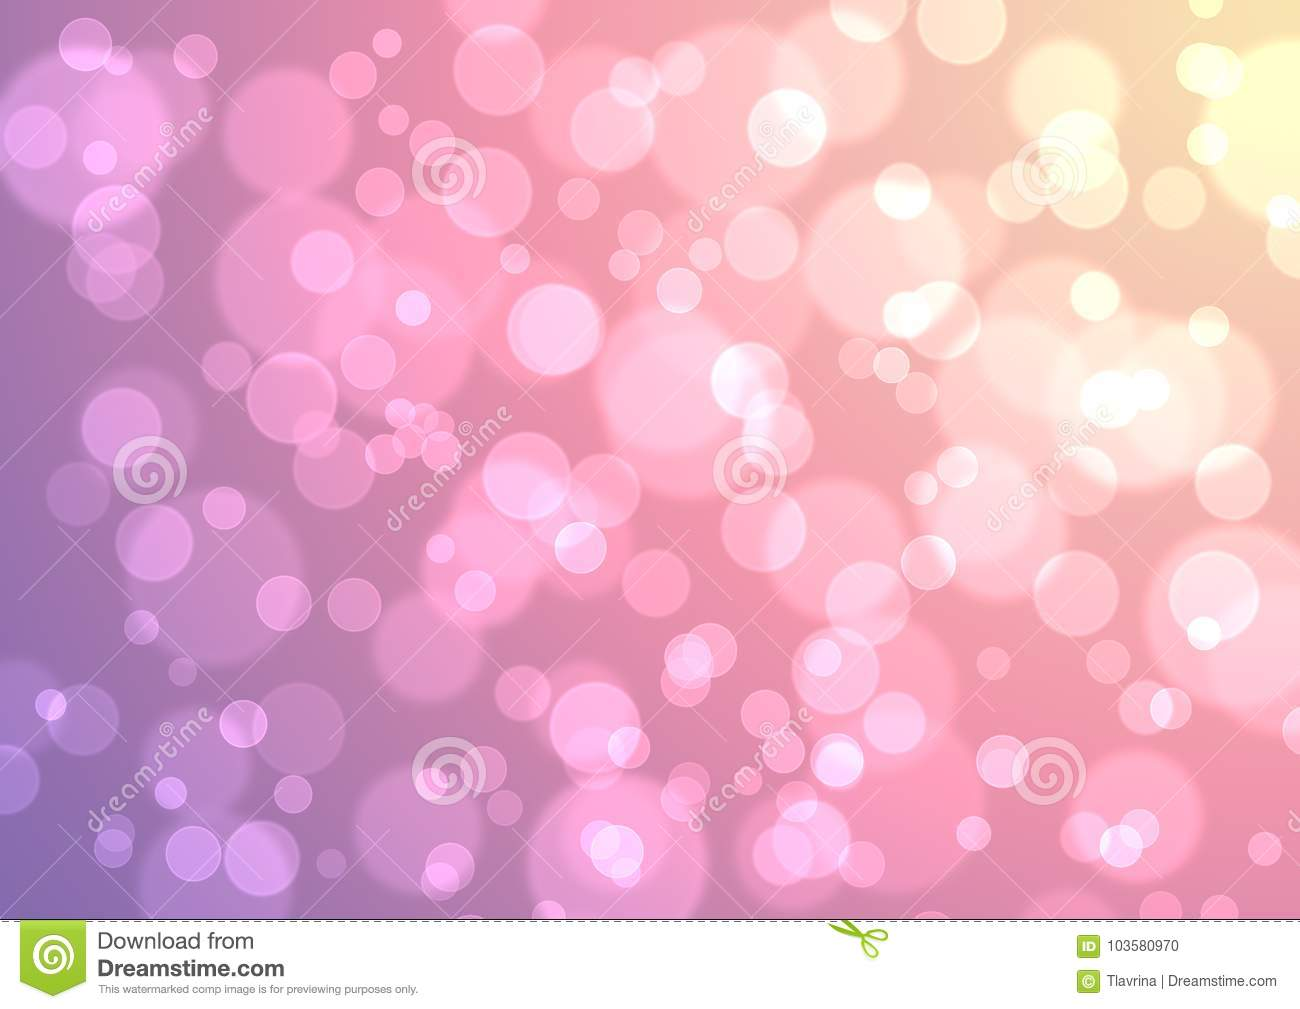 Concetto Dorato Porpora Rosa Di Natale Art Wallpaper Background Di